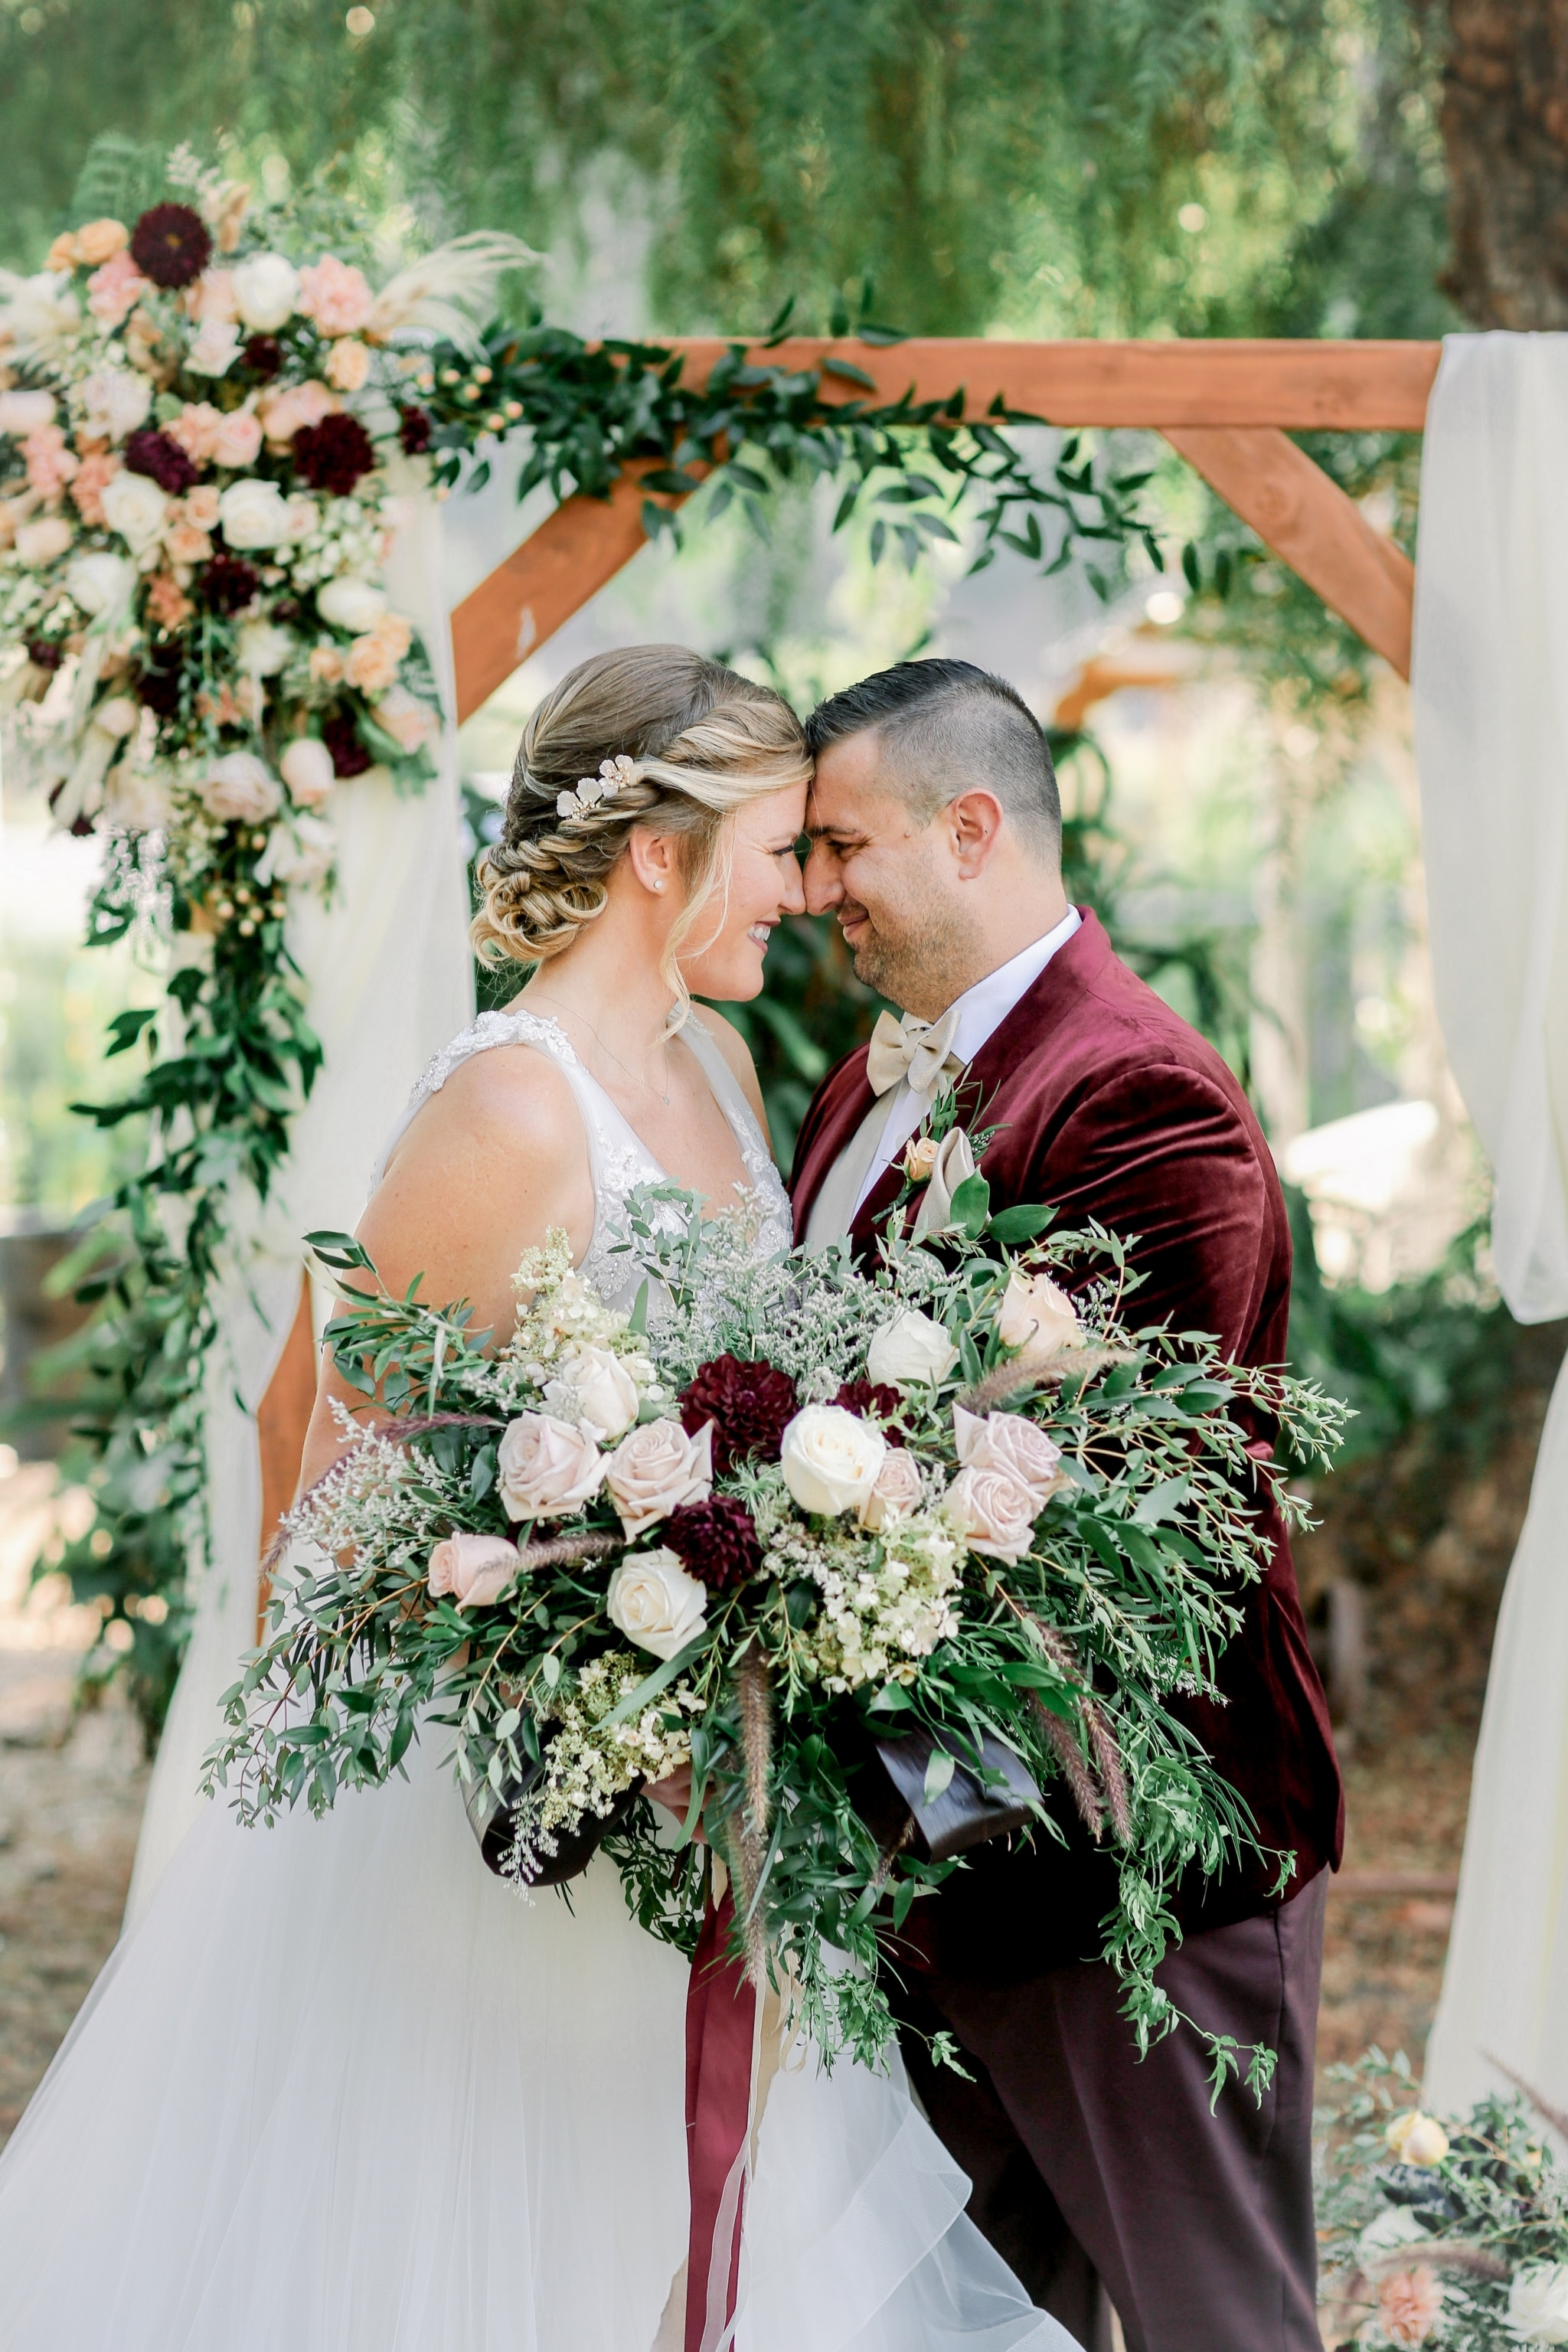 bride and groom touching noses with bride's bouquet in her hands where the ceremony was